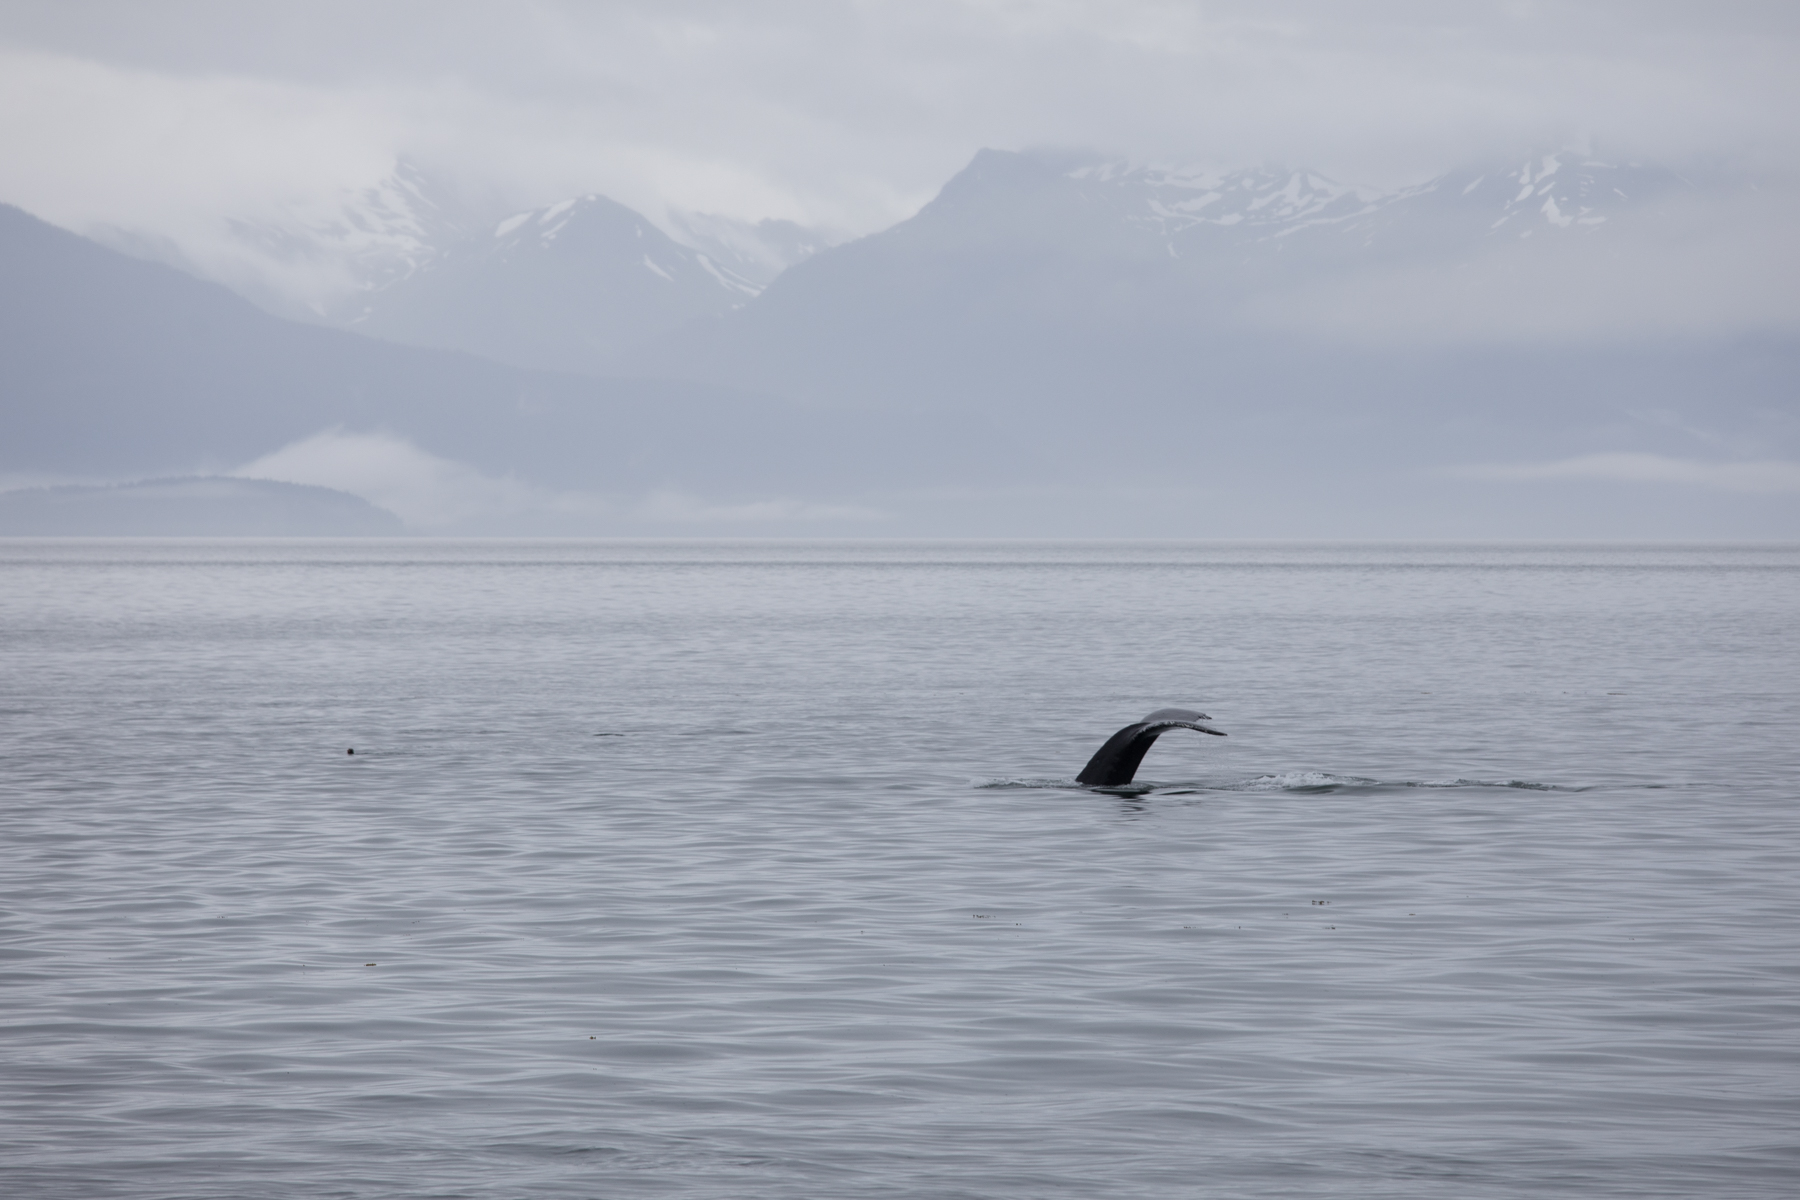 The whale's flukes appear in the air as it dives deeper to feed.  At this point in the evening the rain began to lift for a very welcome break in the weather.  You can see the lower point of Pleasant Island and the mainland in the background.